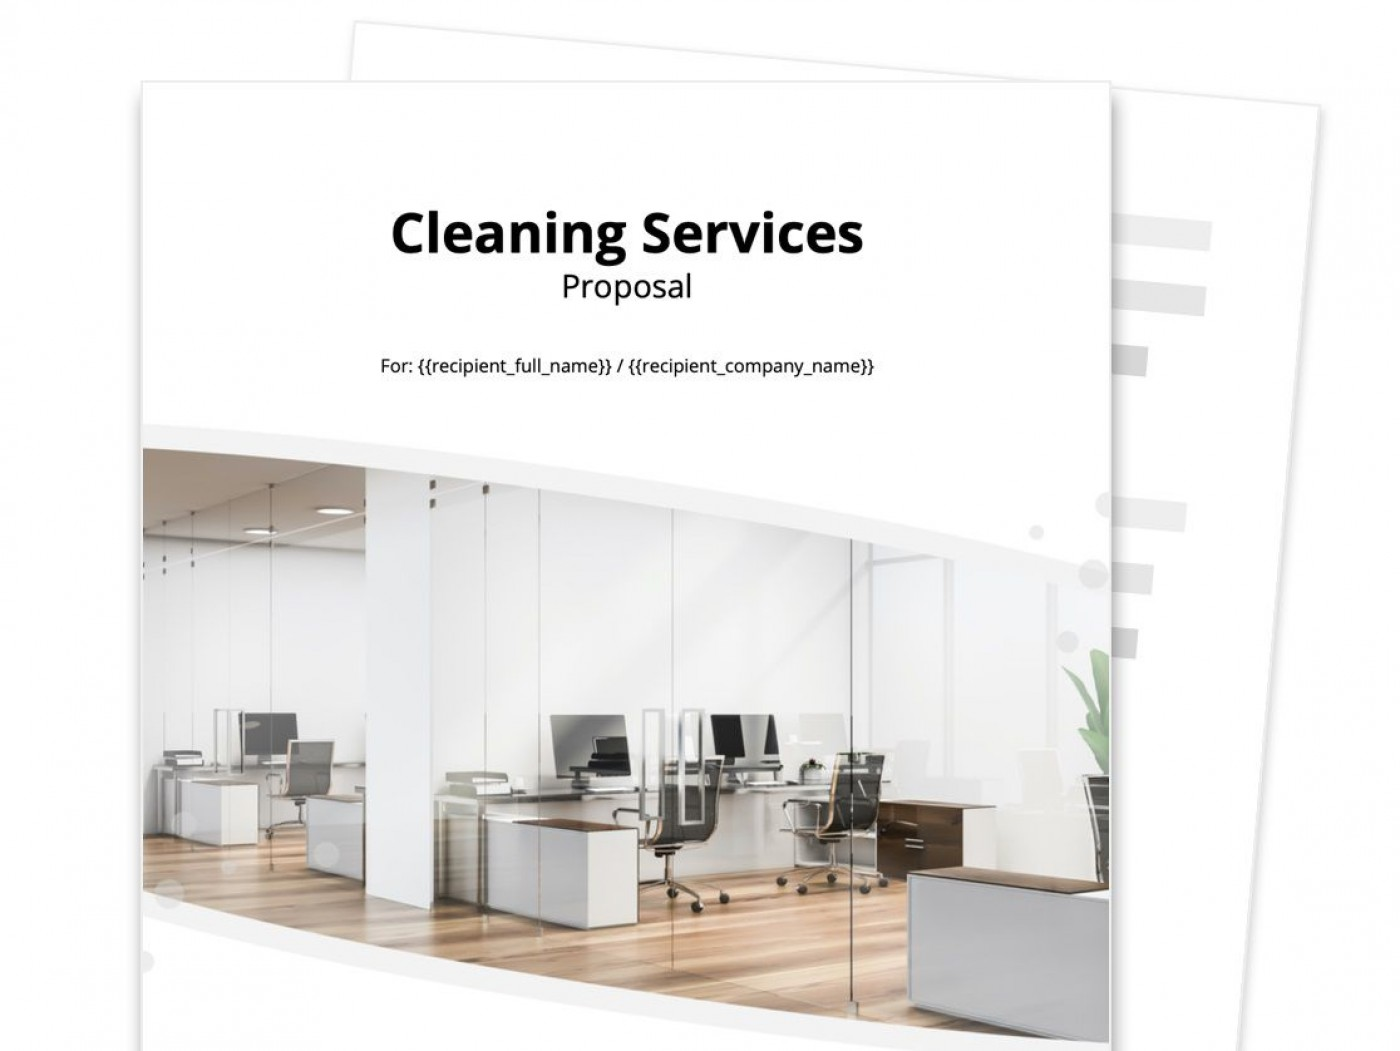 006 Stunning Free Cleaning Proposal Template Image  Pdf Word1400